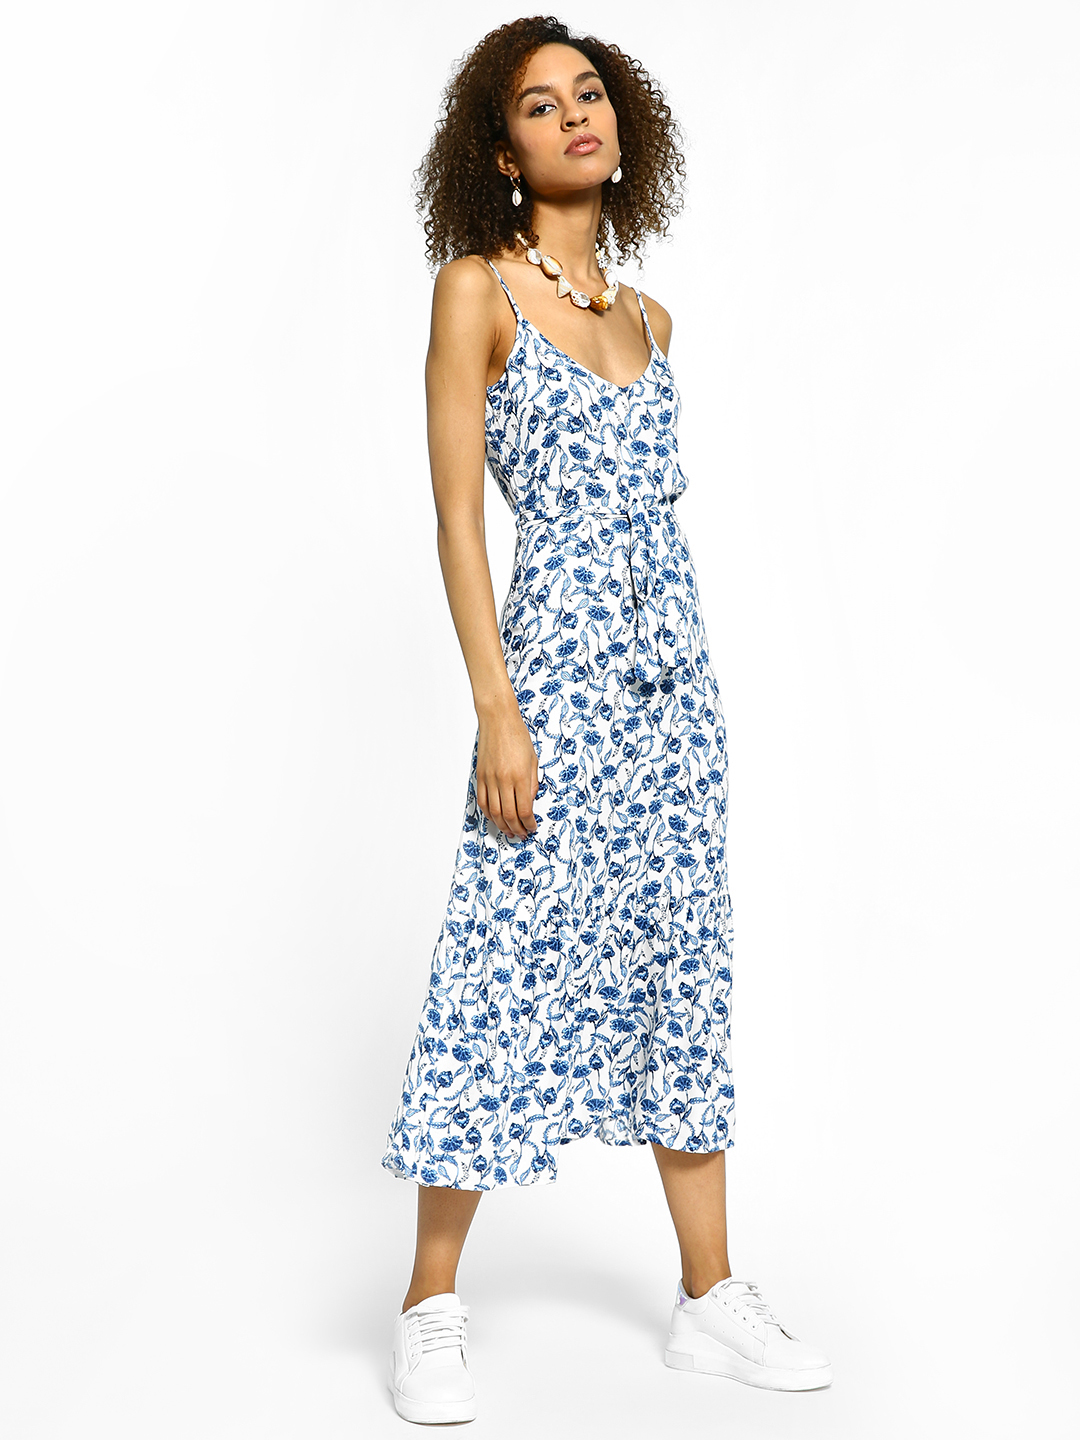 Femella White Floral Print Tie-Knot Midi Dress 1